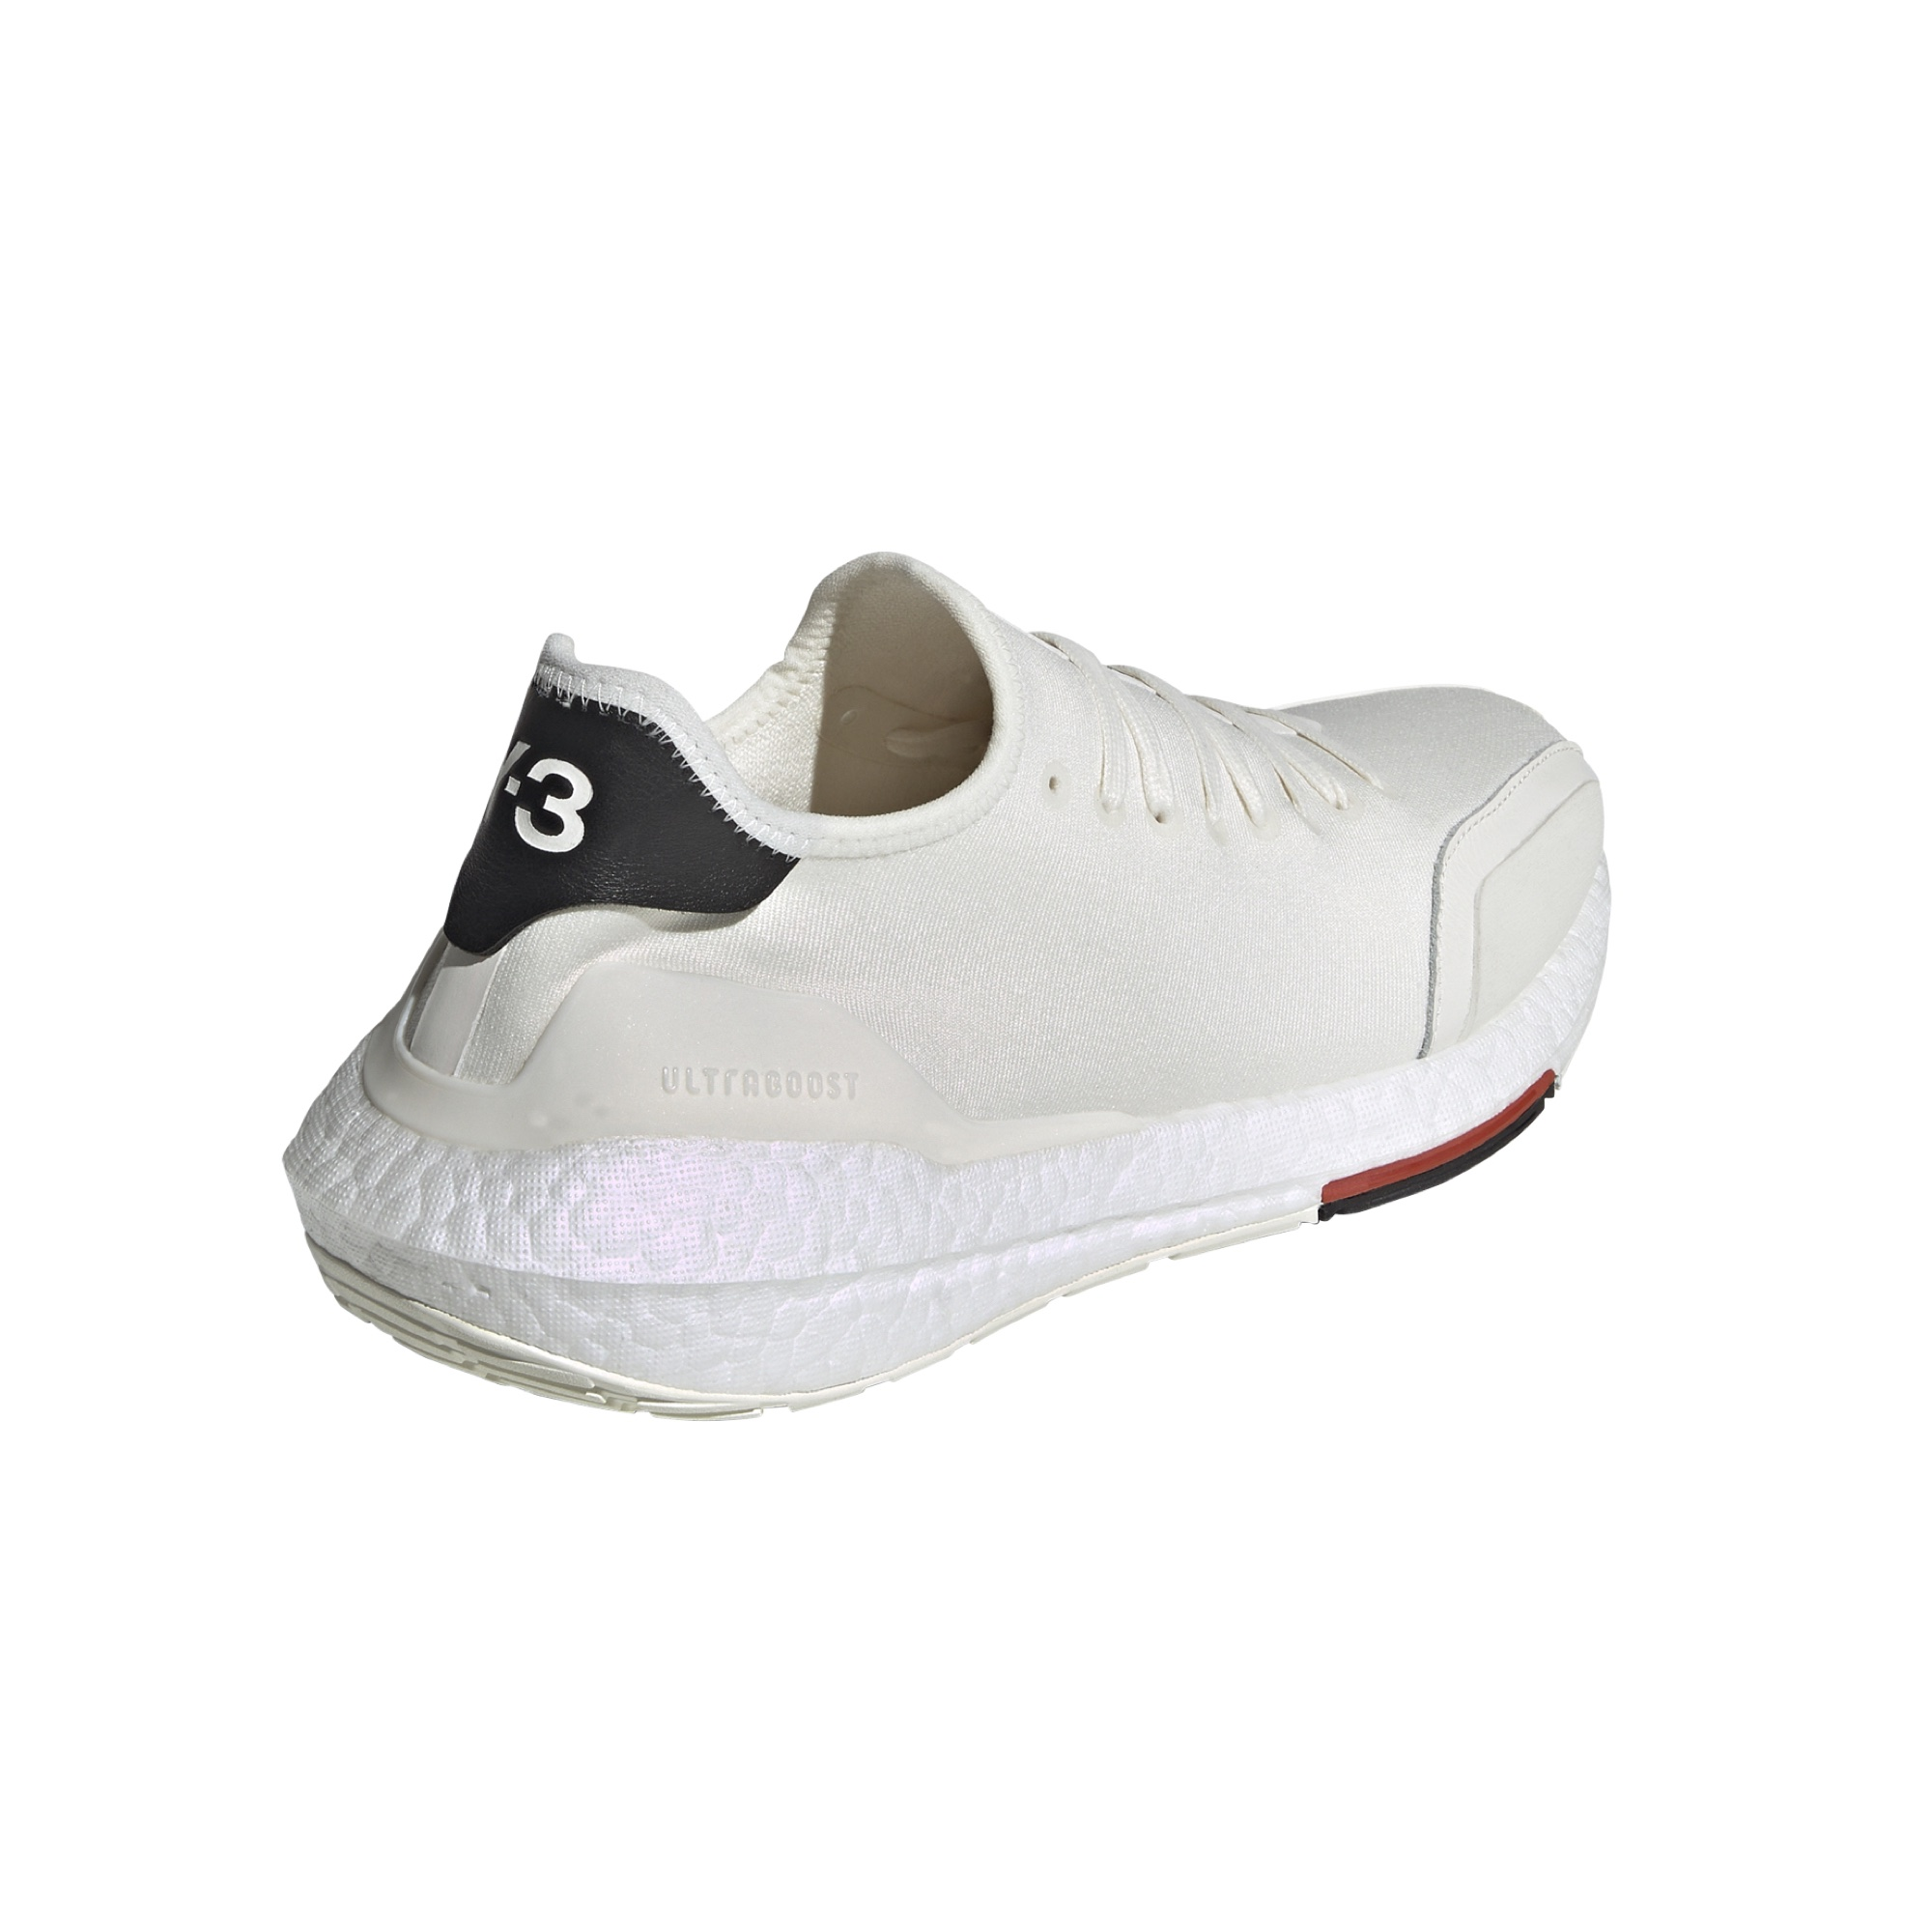 Y3 Adidas Ultraboost 21 core white red black